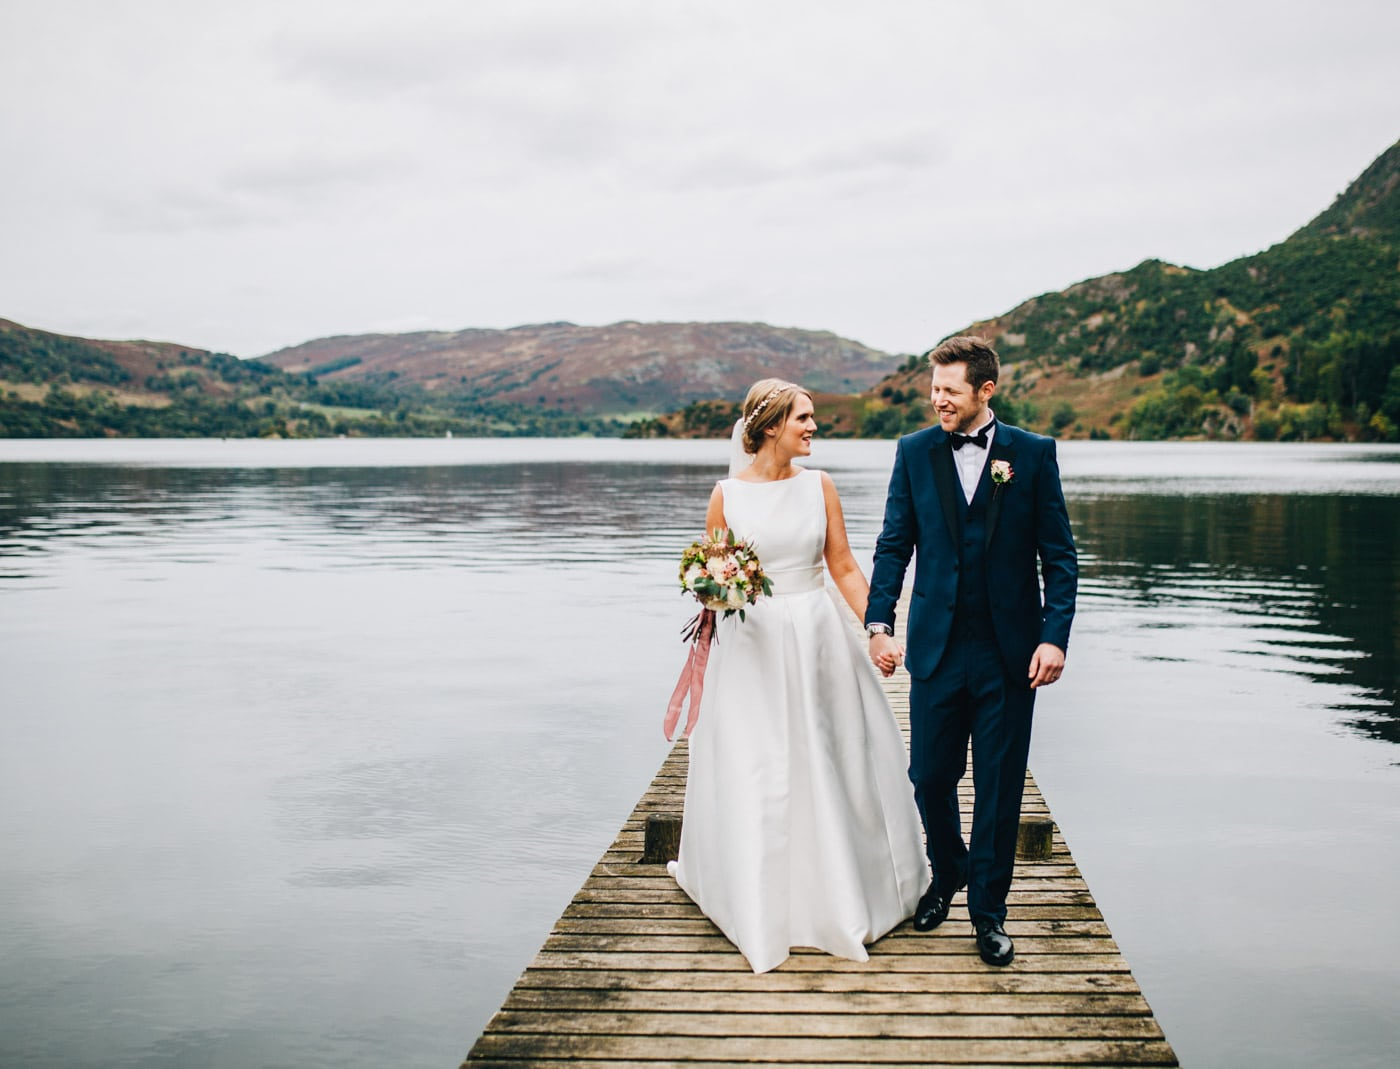 walking on the jetty - inn on the lake wedding